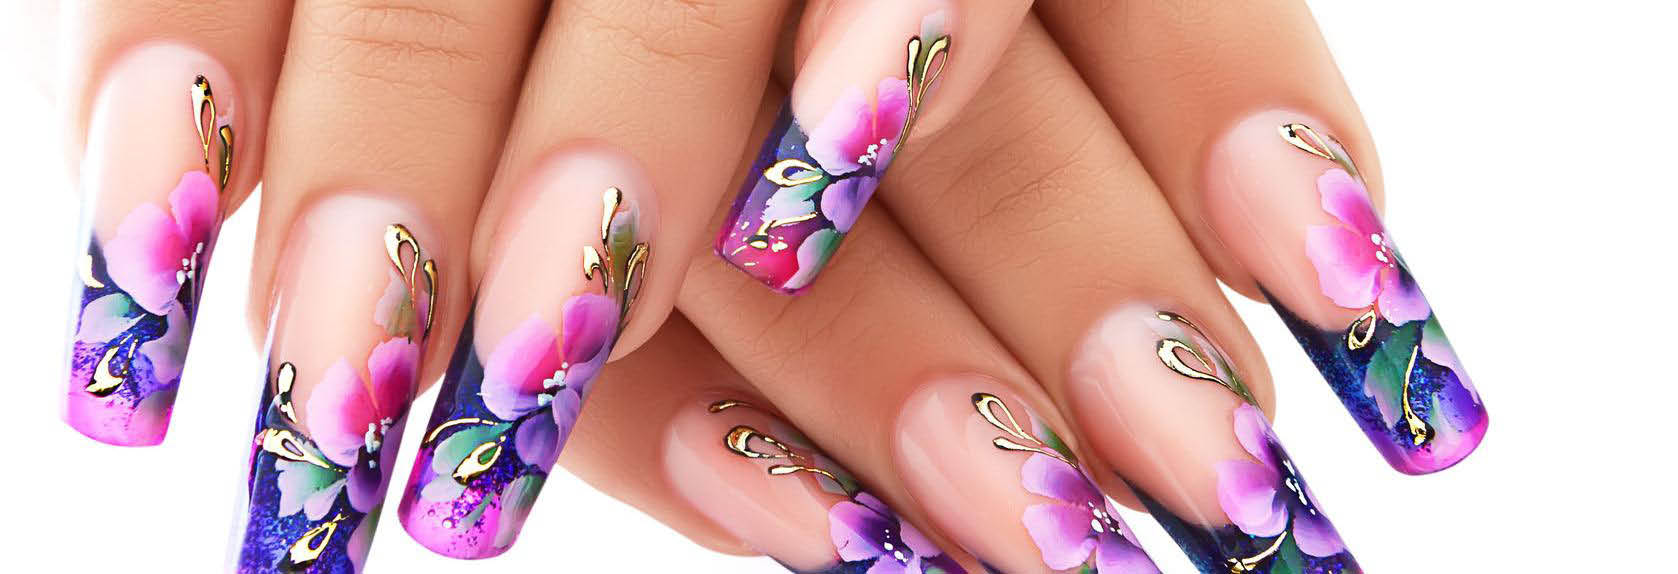 BEAUTIFUL NAILS in Seminole, FL - Local Coupons August 18, 2018